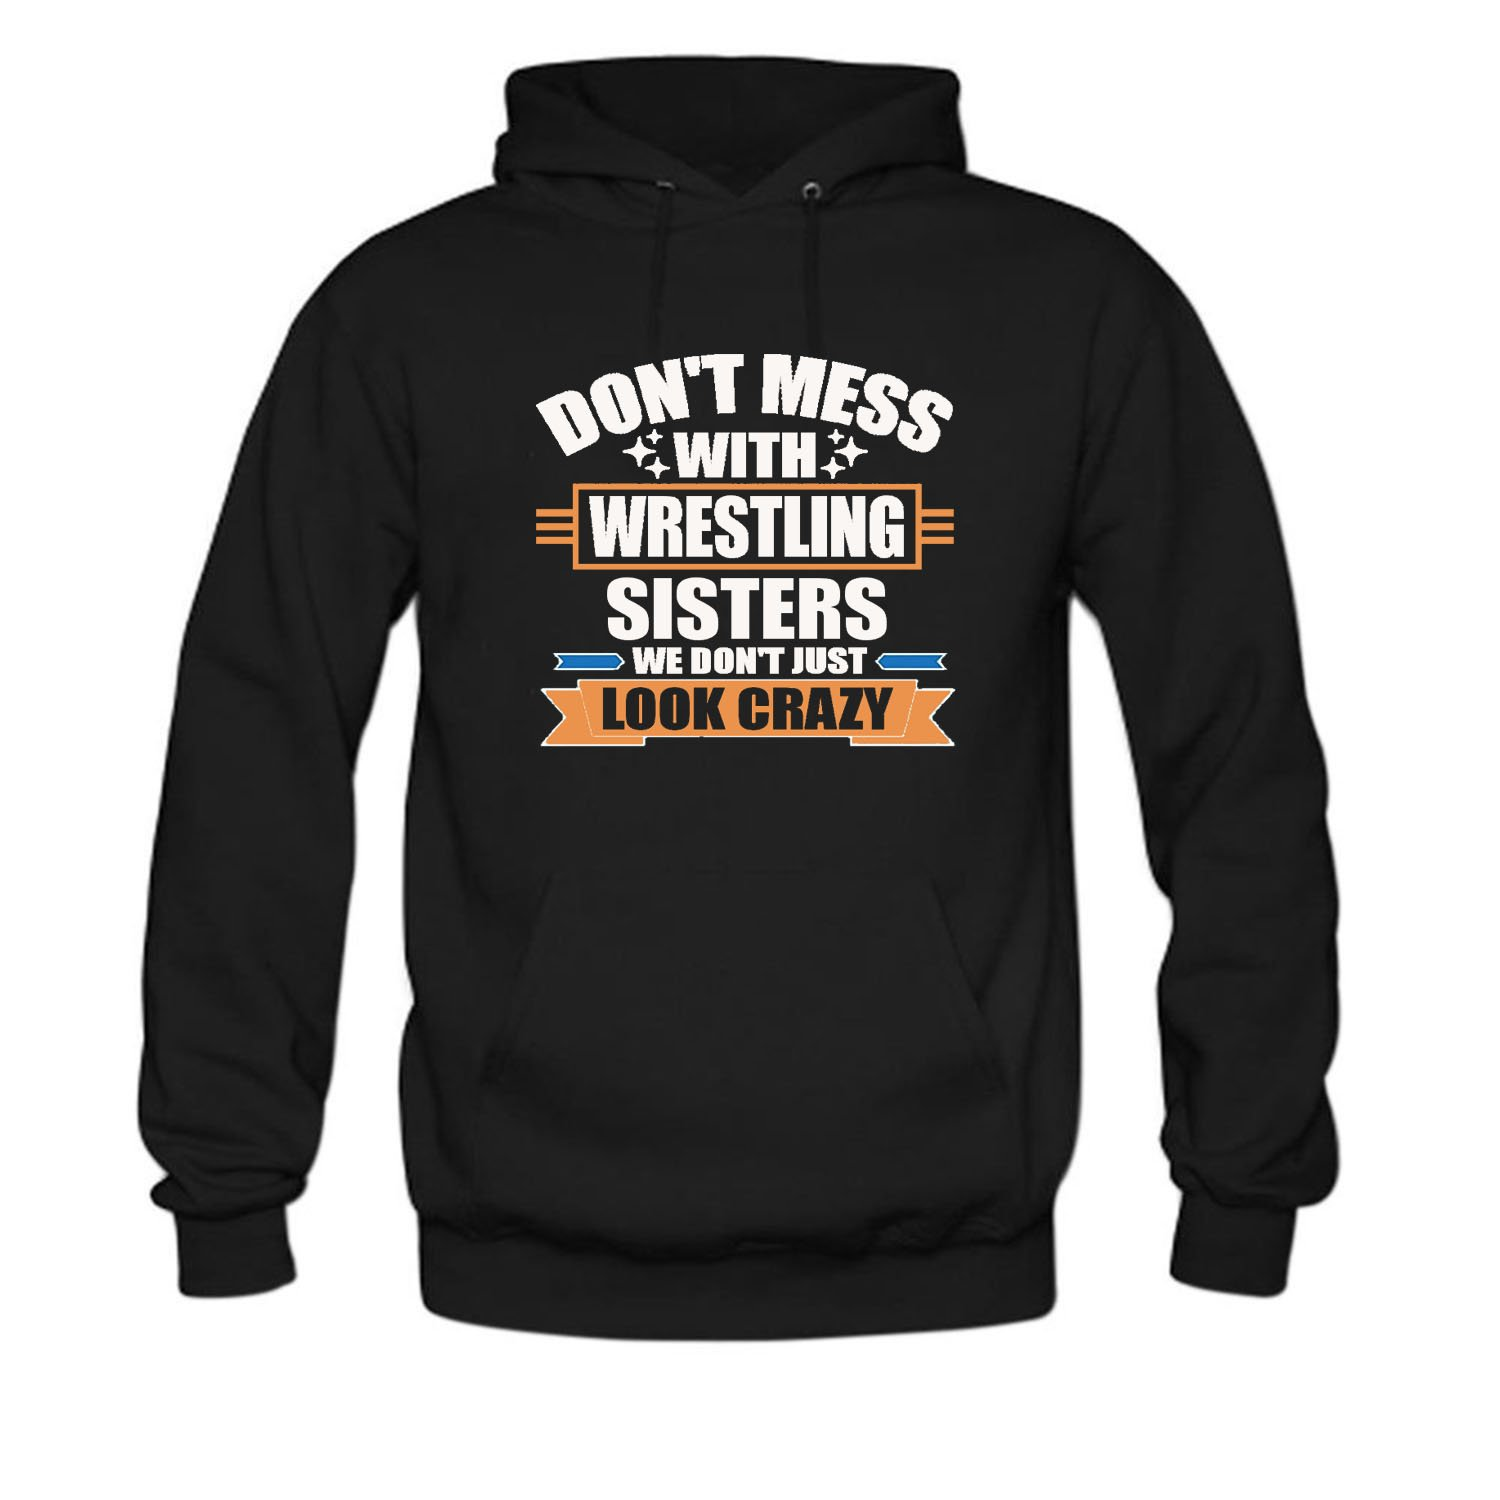 CCBING Women's Don't Mess With Wrestling Sisters We Don't Just Look Crazy Hoodie